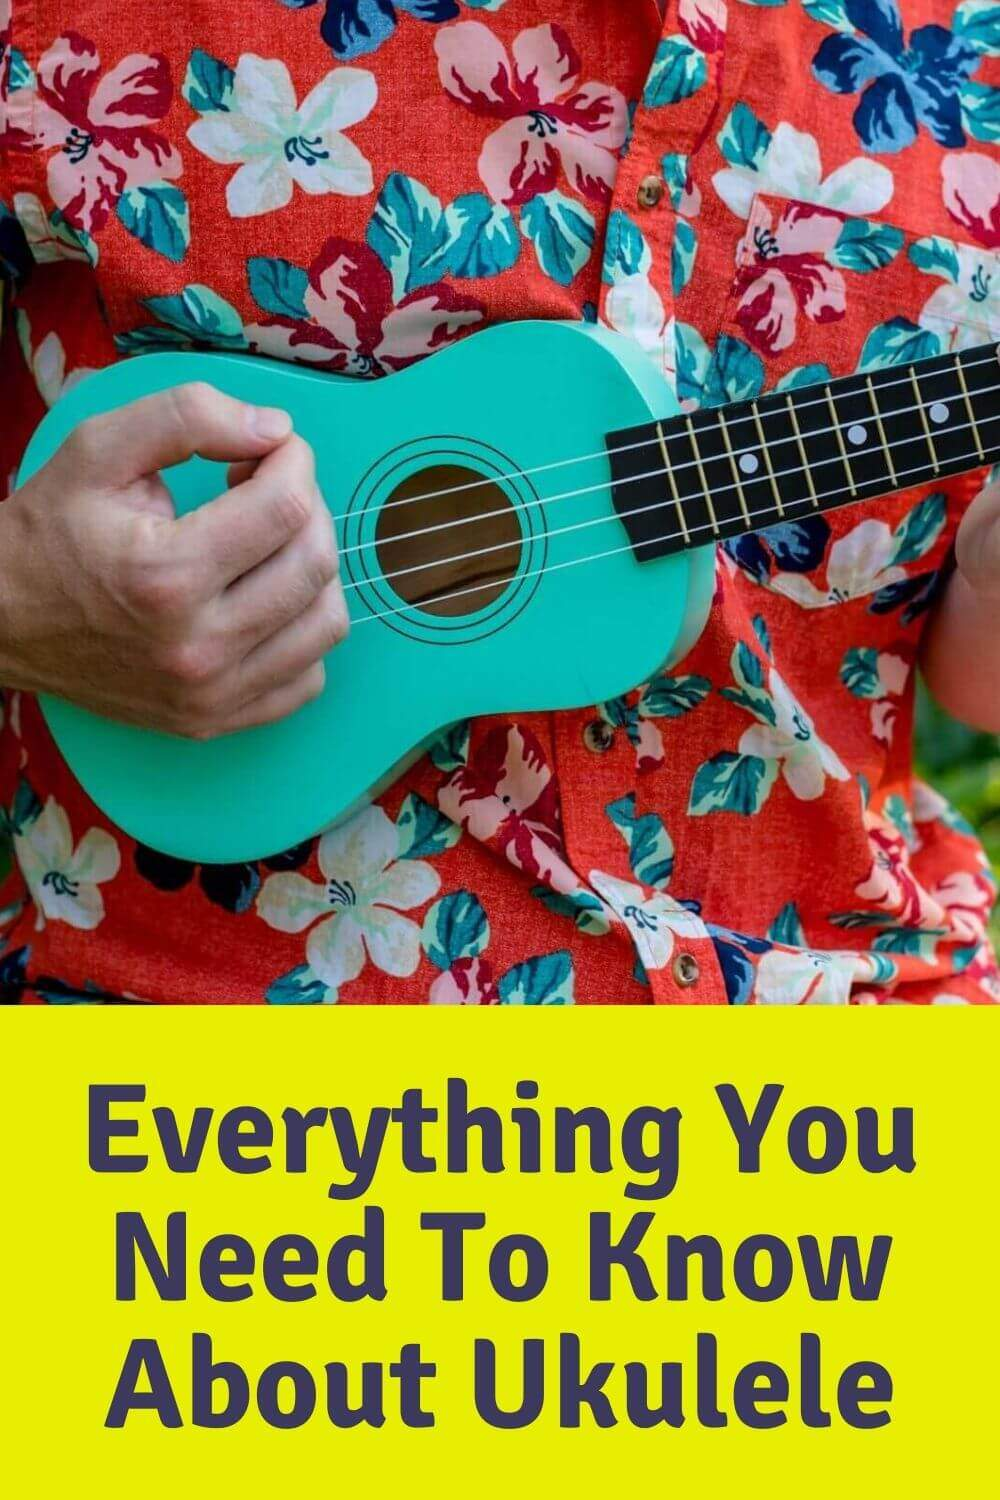 Everything You Need To Know About Ukulele